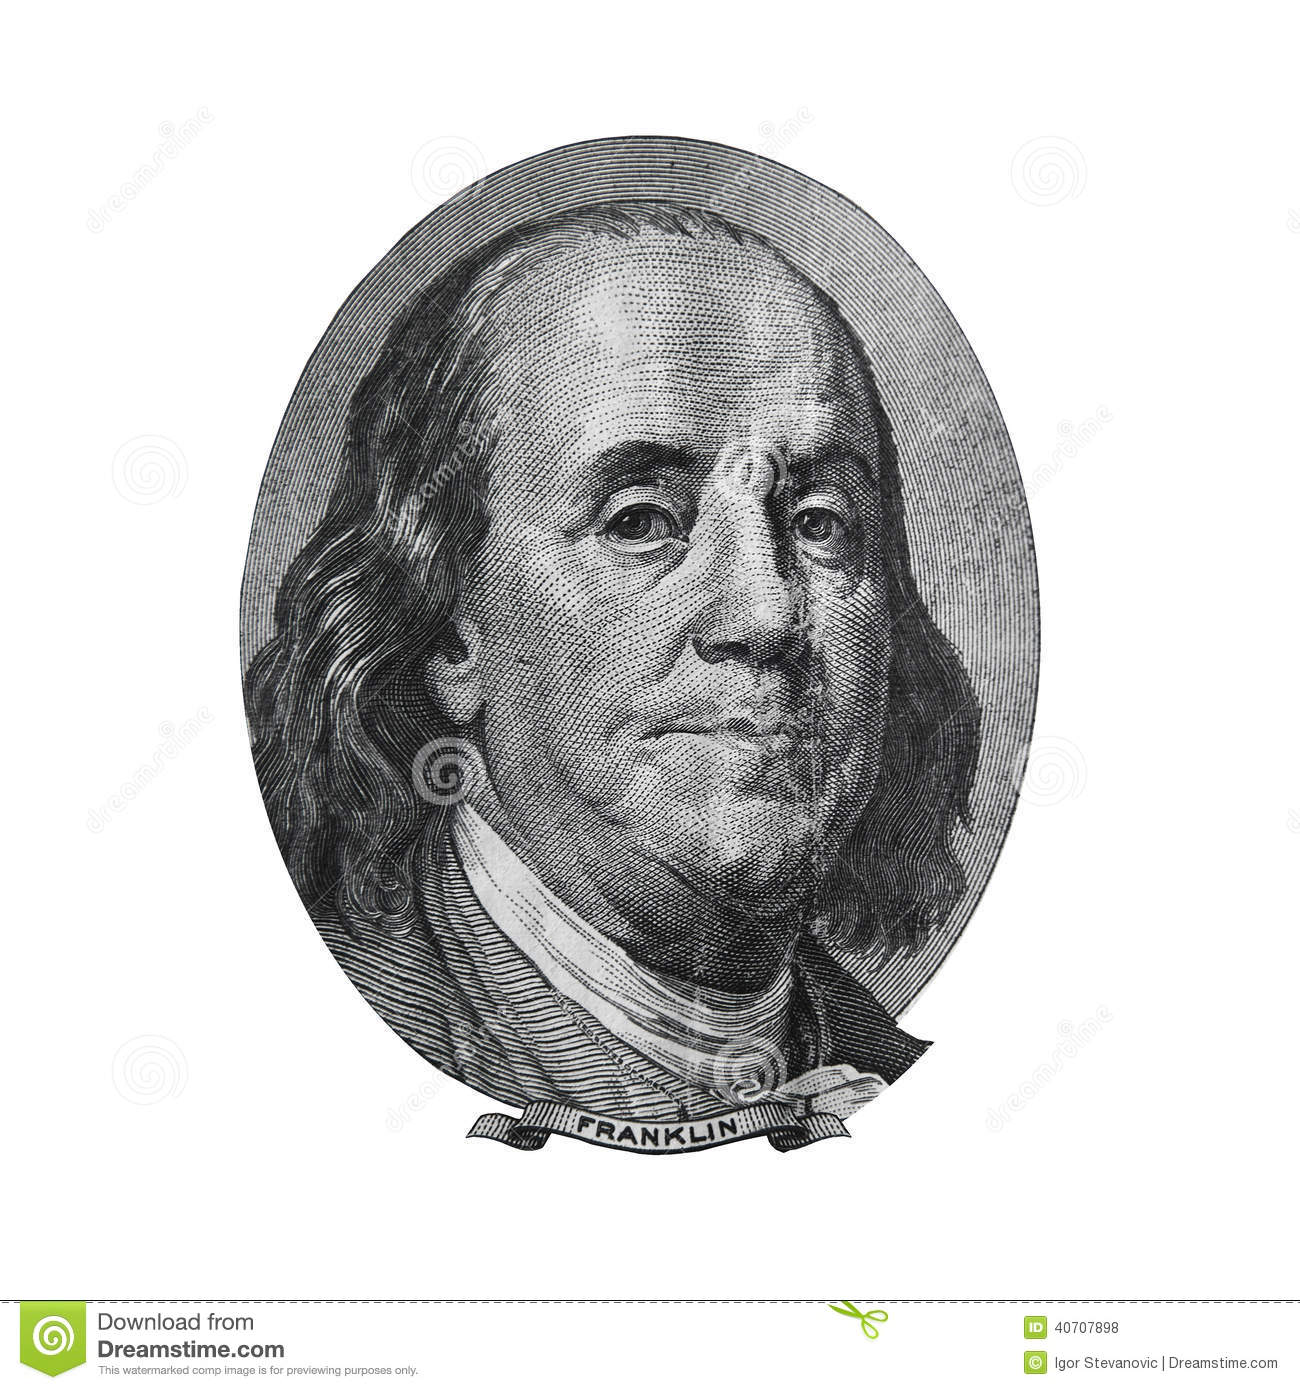 ben franklin american dream essay Everything you ever wanted to know about the quotes talking about visions of america in the autobiography of benjamin franklin, written by experts just for you.